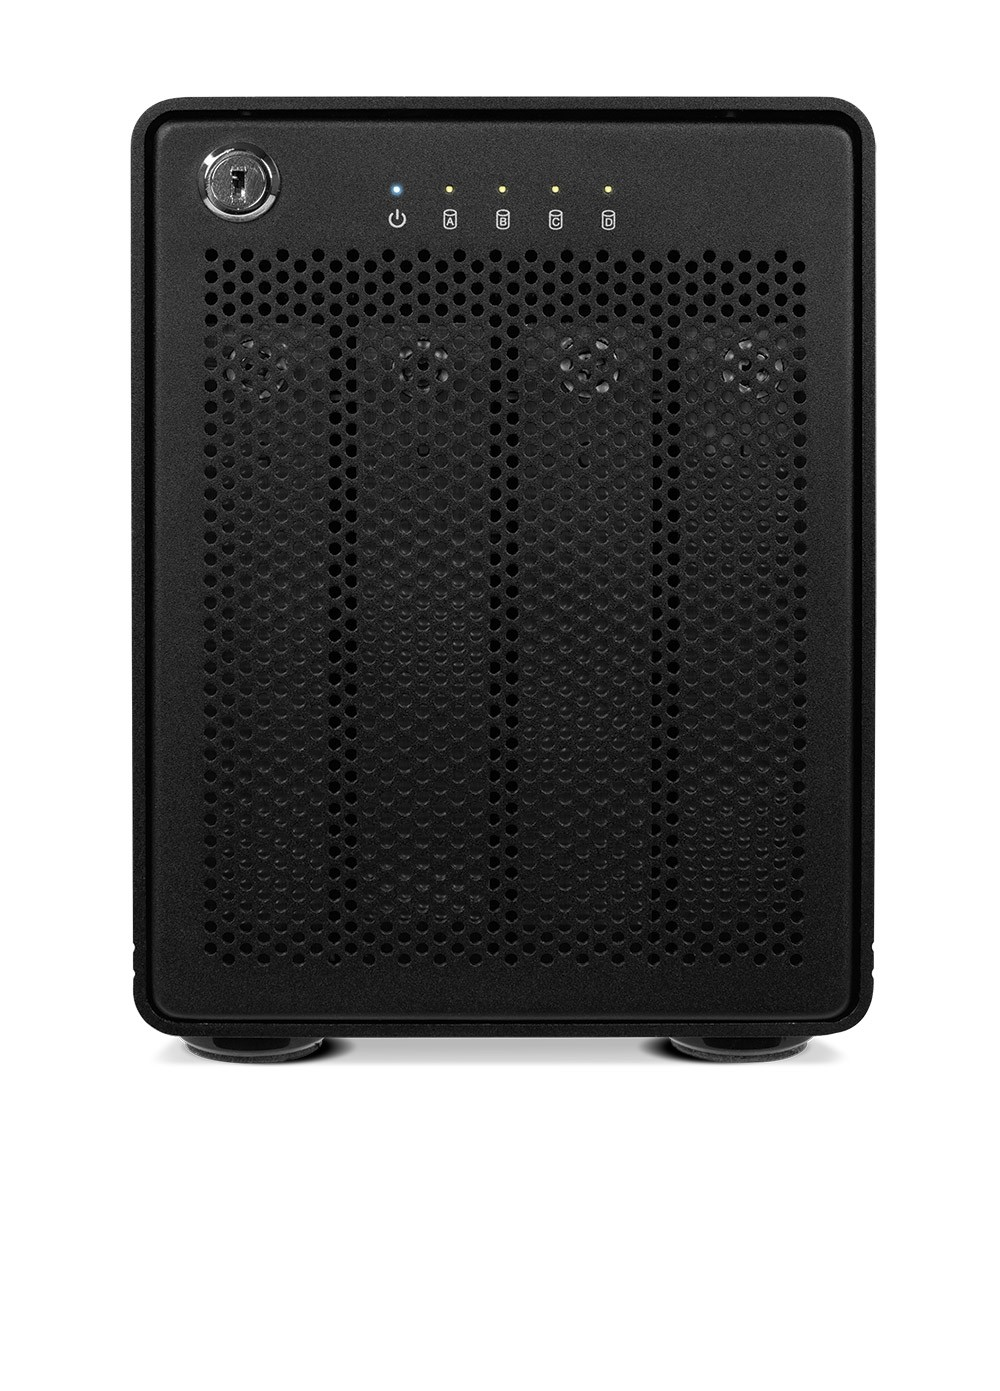 64.0TB OWC ThunderBay 4, four-drive HDD with dual Thunderbolt 2 ports, RAID-ready Solution, OWCTB2IVT64.0S